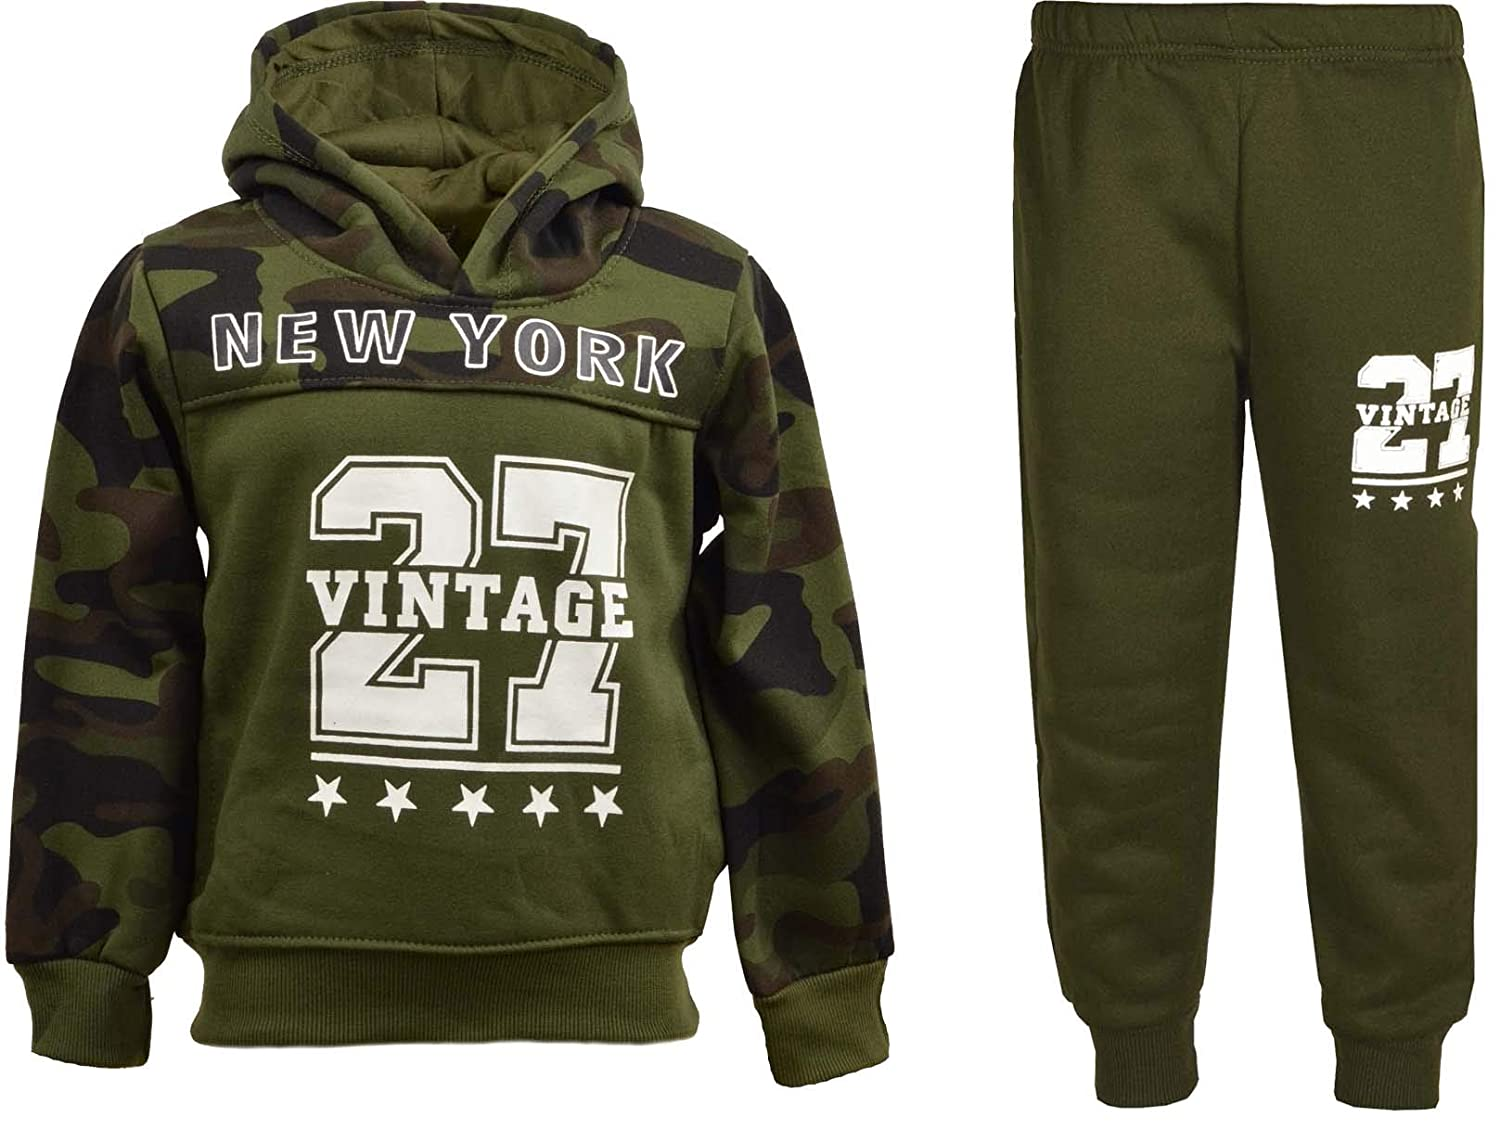 f3e2f1bfd4 Rag Rebels Boys Tracksuits - Camouflage Army Print Design - Ages 3 ...